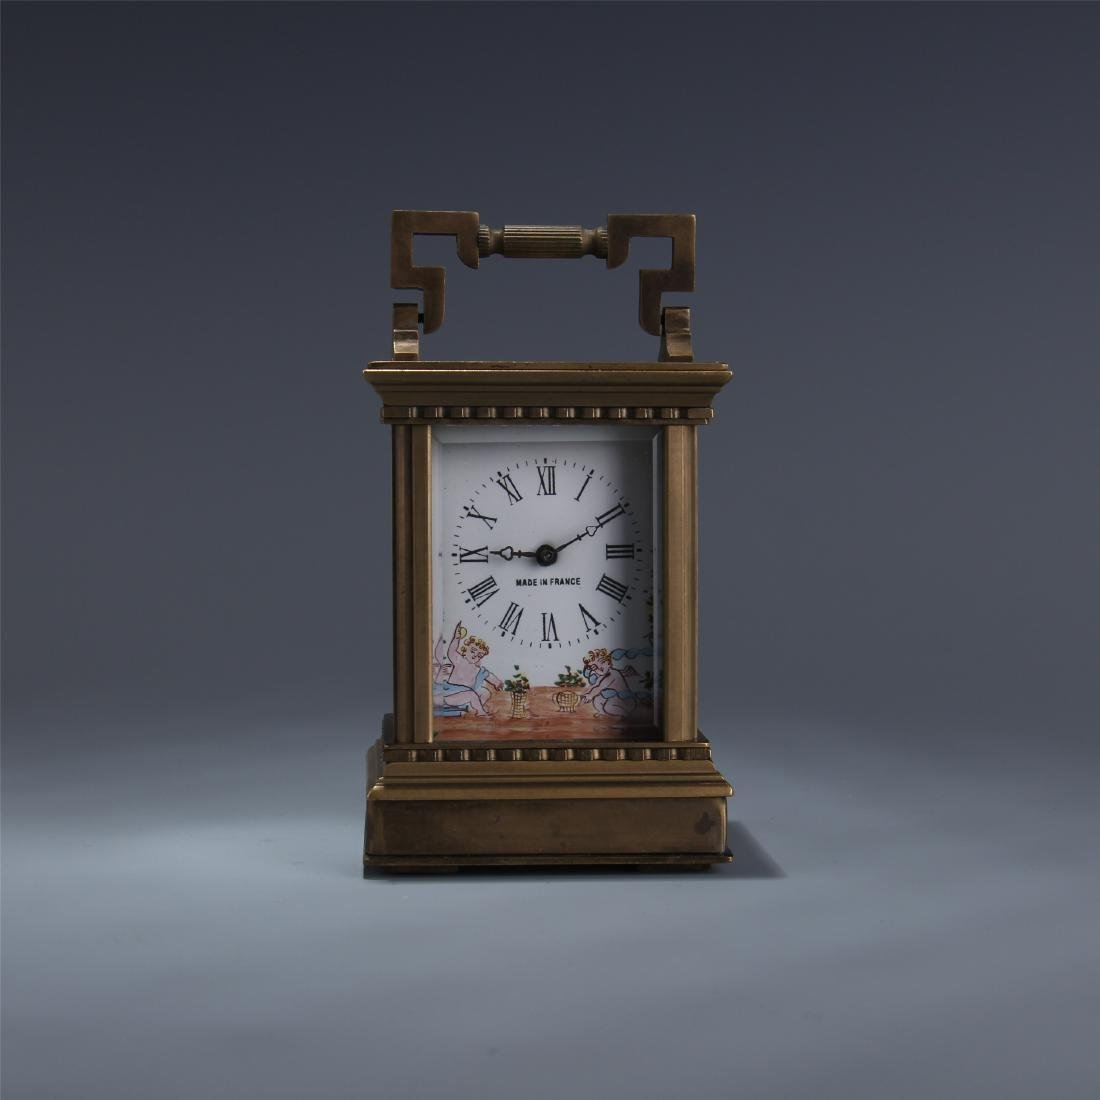 EUROPEAN BRONZE DOUBLE DIAL CLOCK